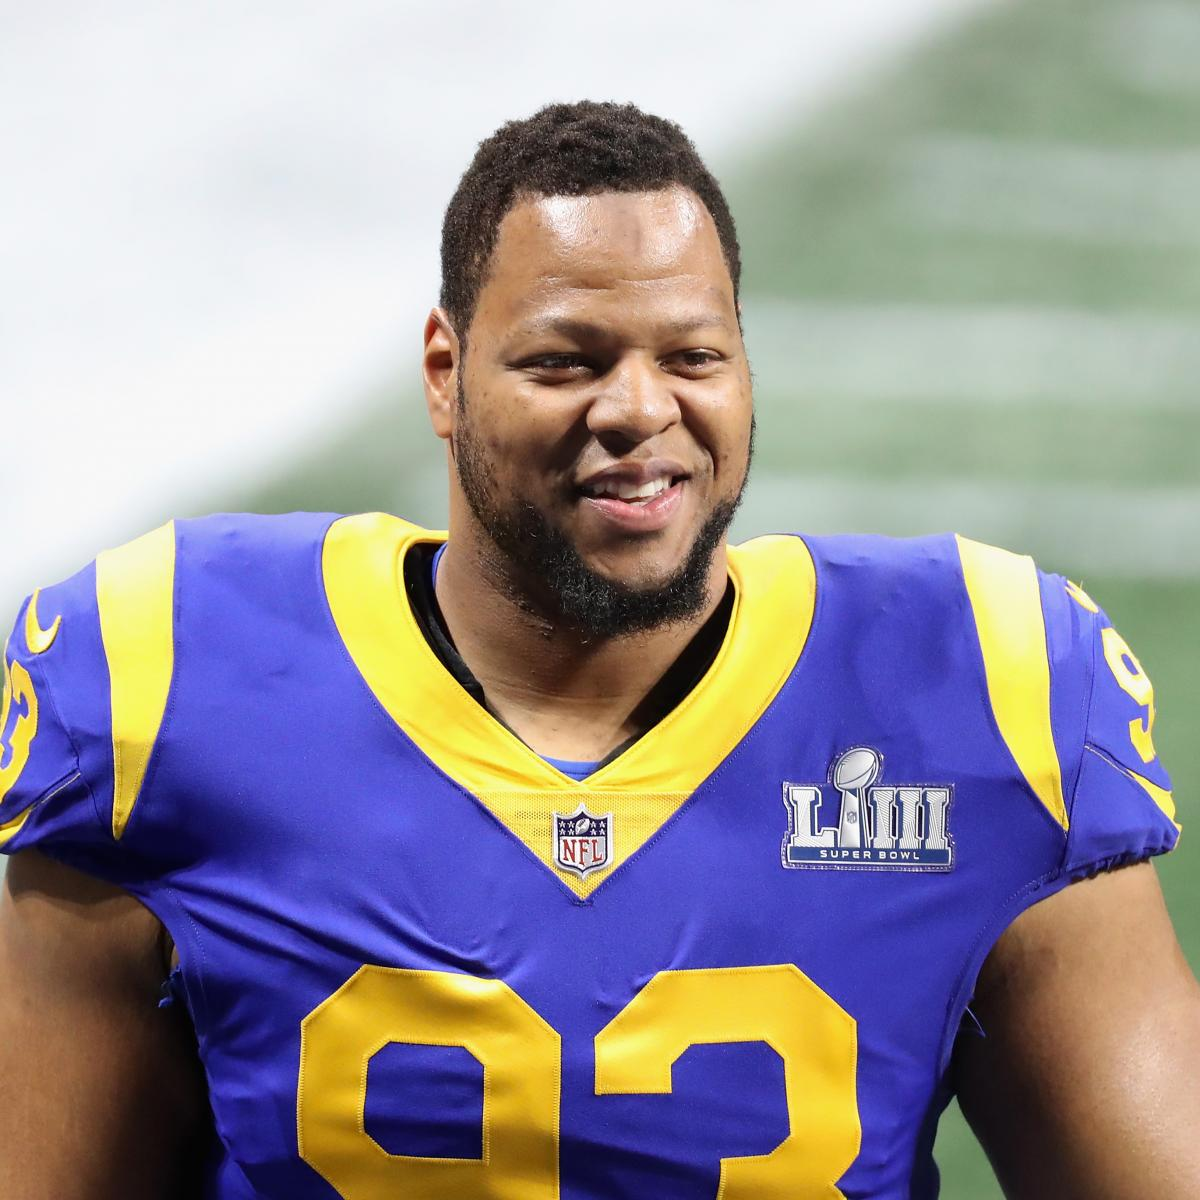 a683bbcb63f Ndamukong Suh Rumors: Latest on Star's Status with Rams, Preferred Teams,  More | Bleacher Report | Latest News, Videos and Highlights